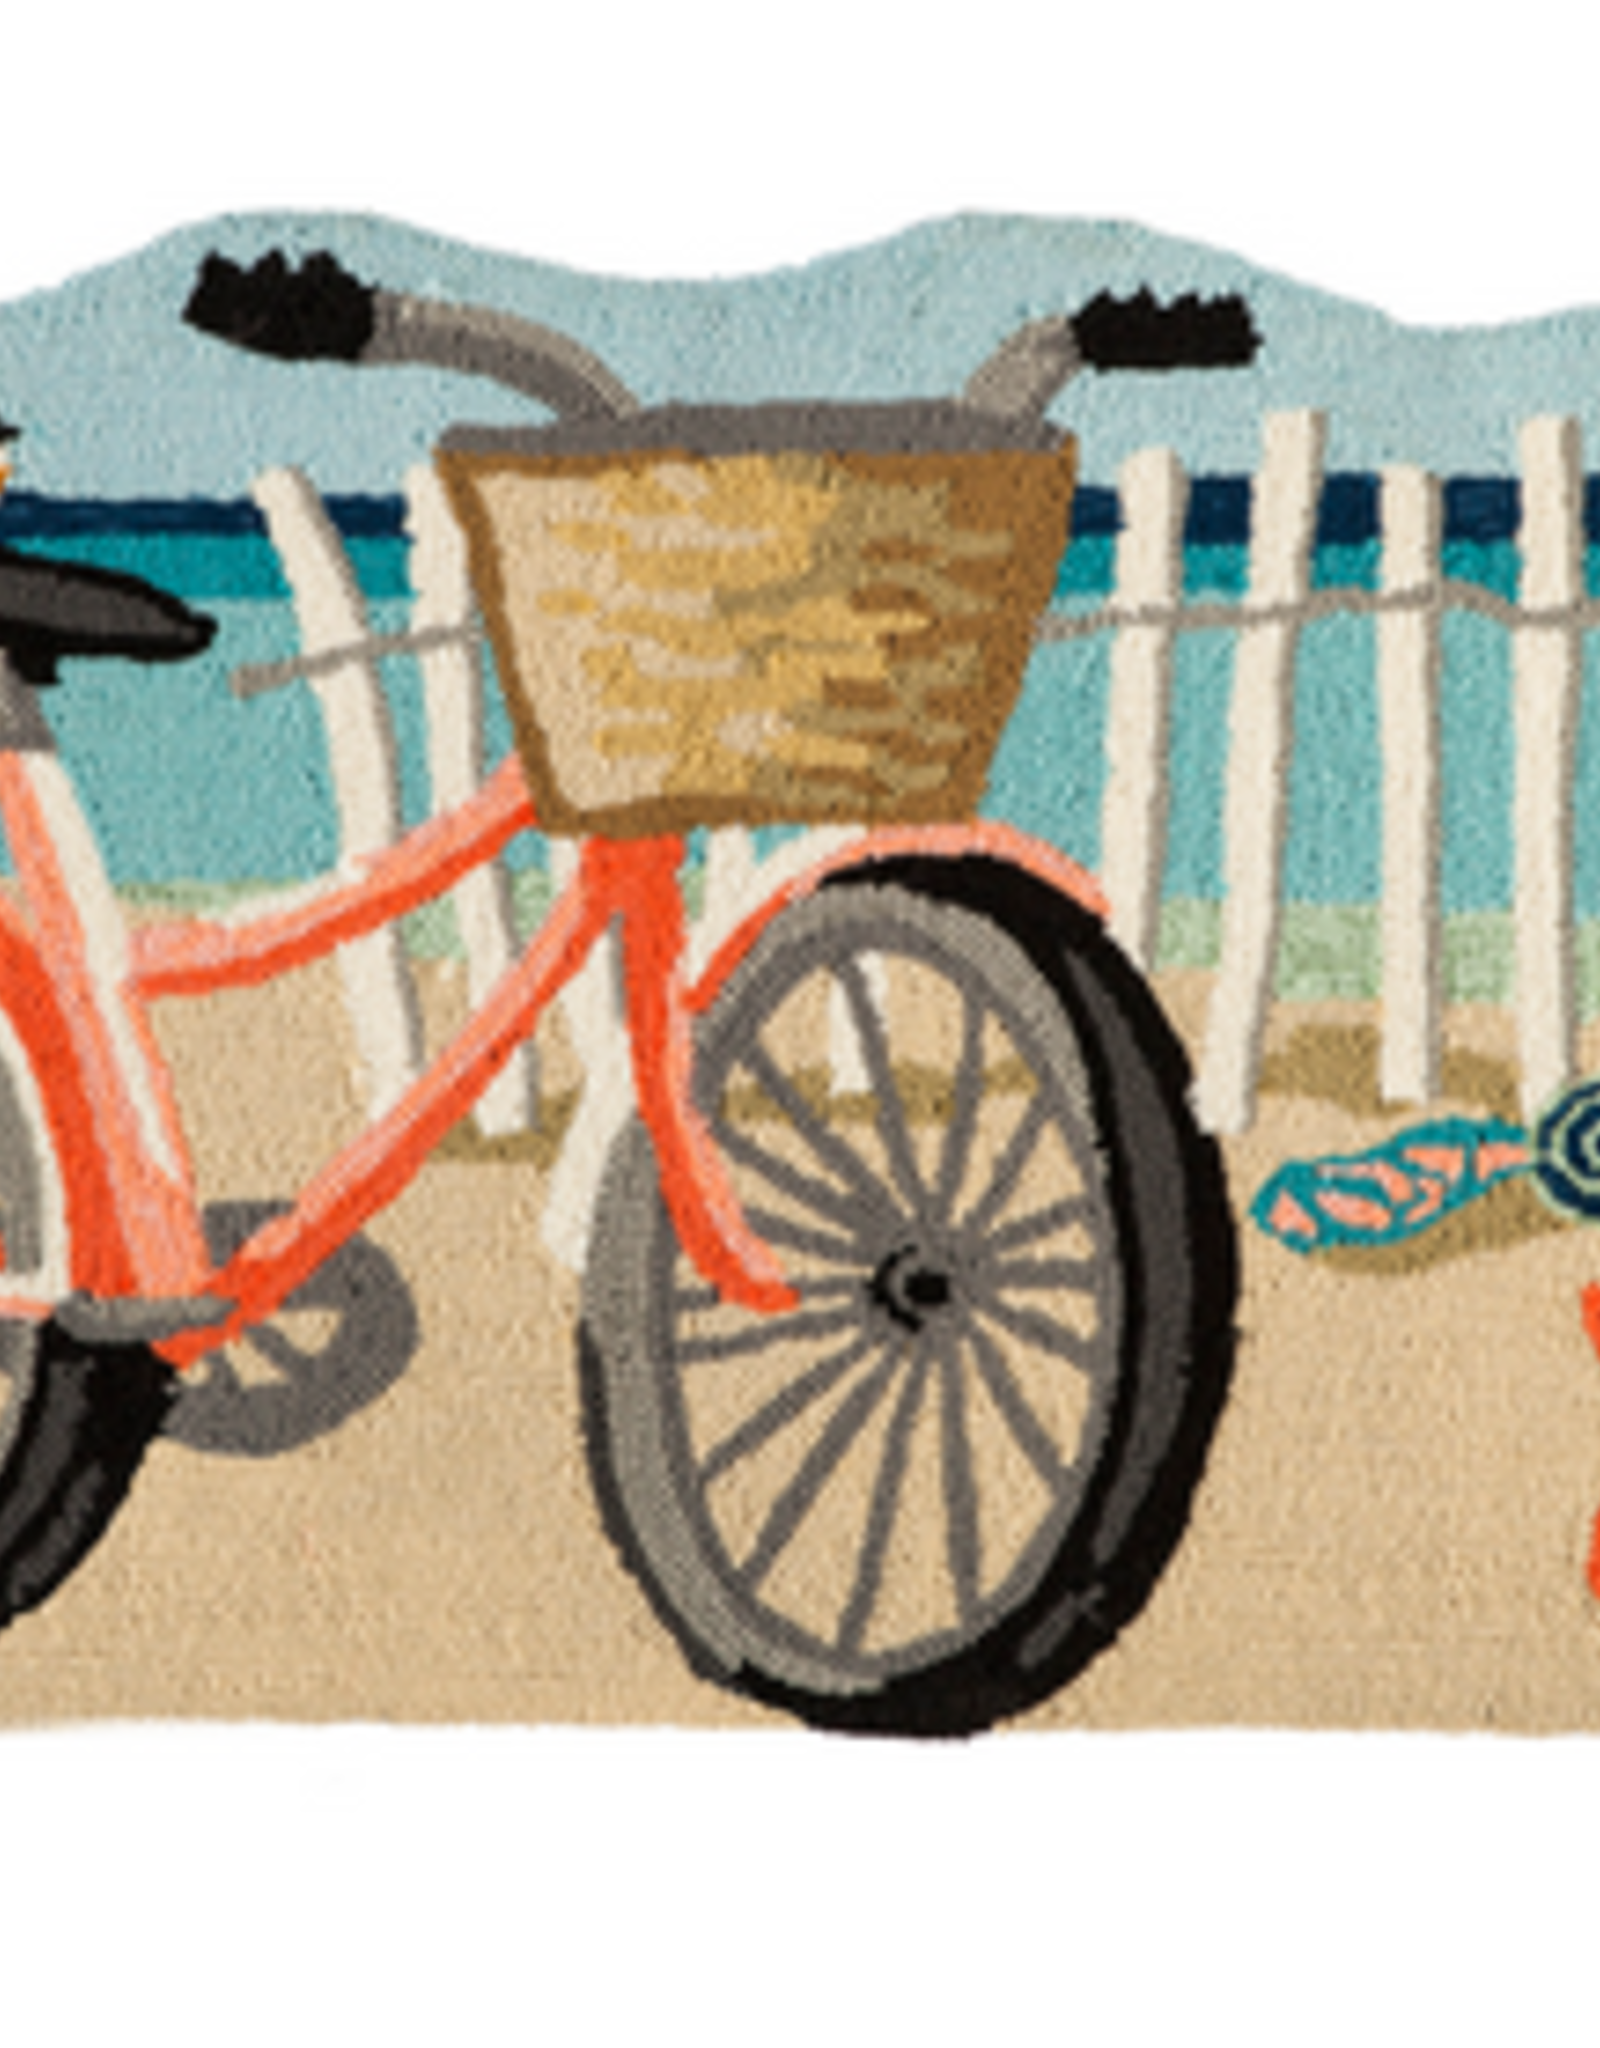 Evergreen Beach Bicycle Shaped Hooked Rug